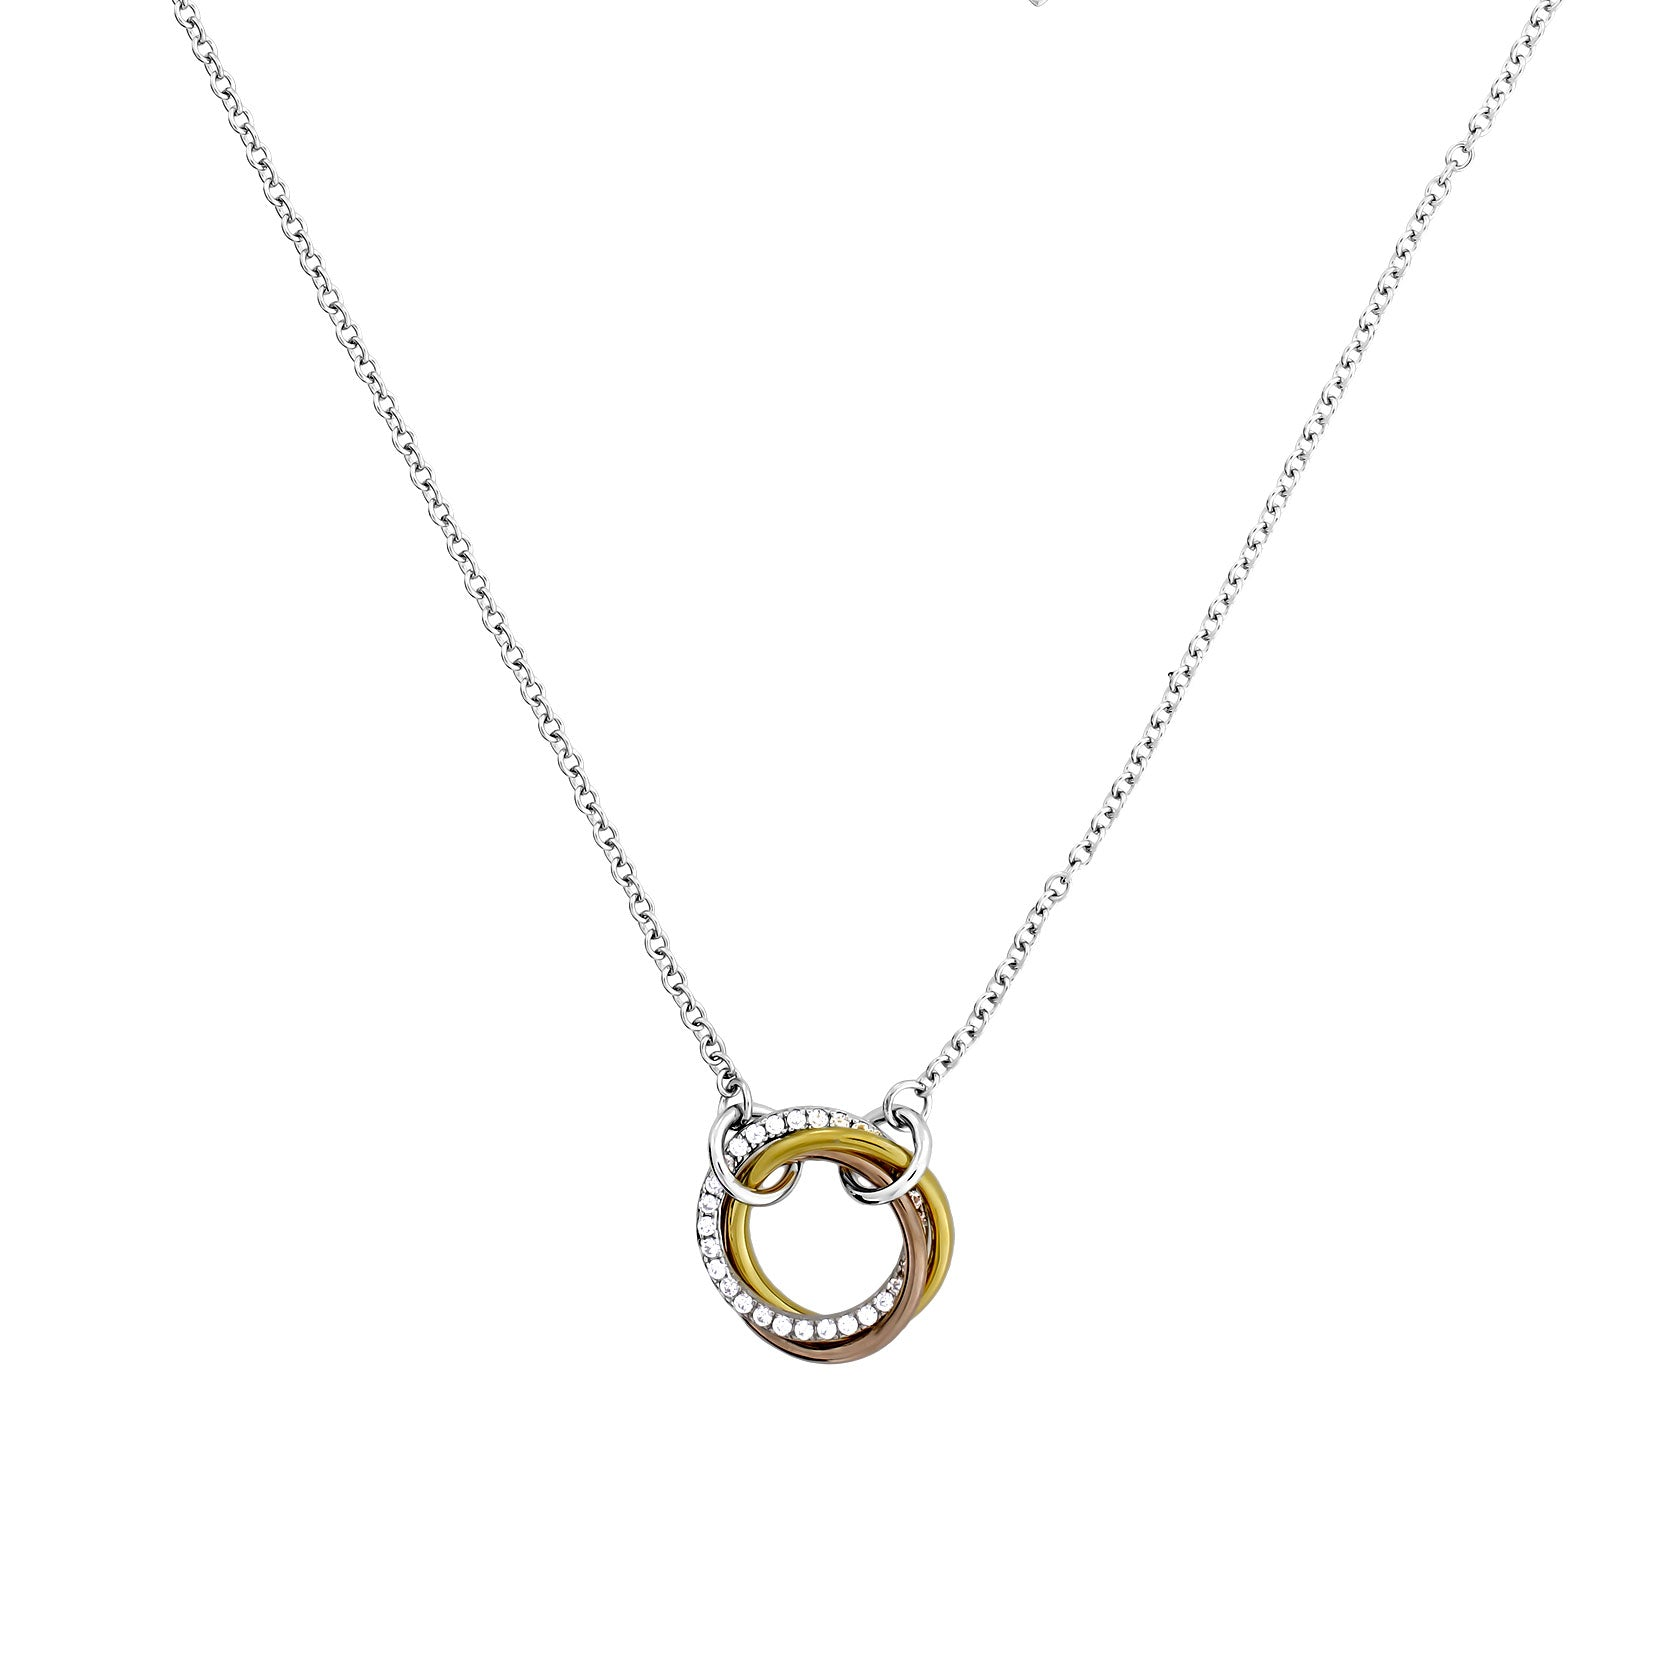 Entangled Love Knot Necklace - With Pavé